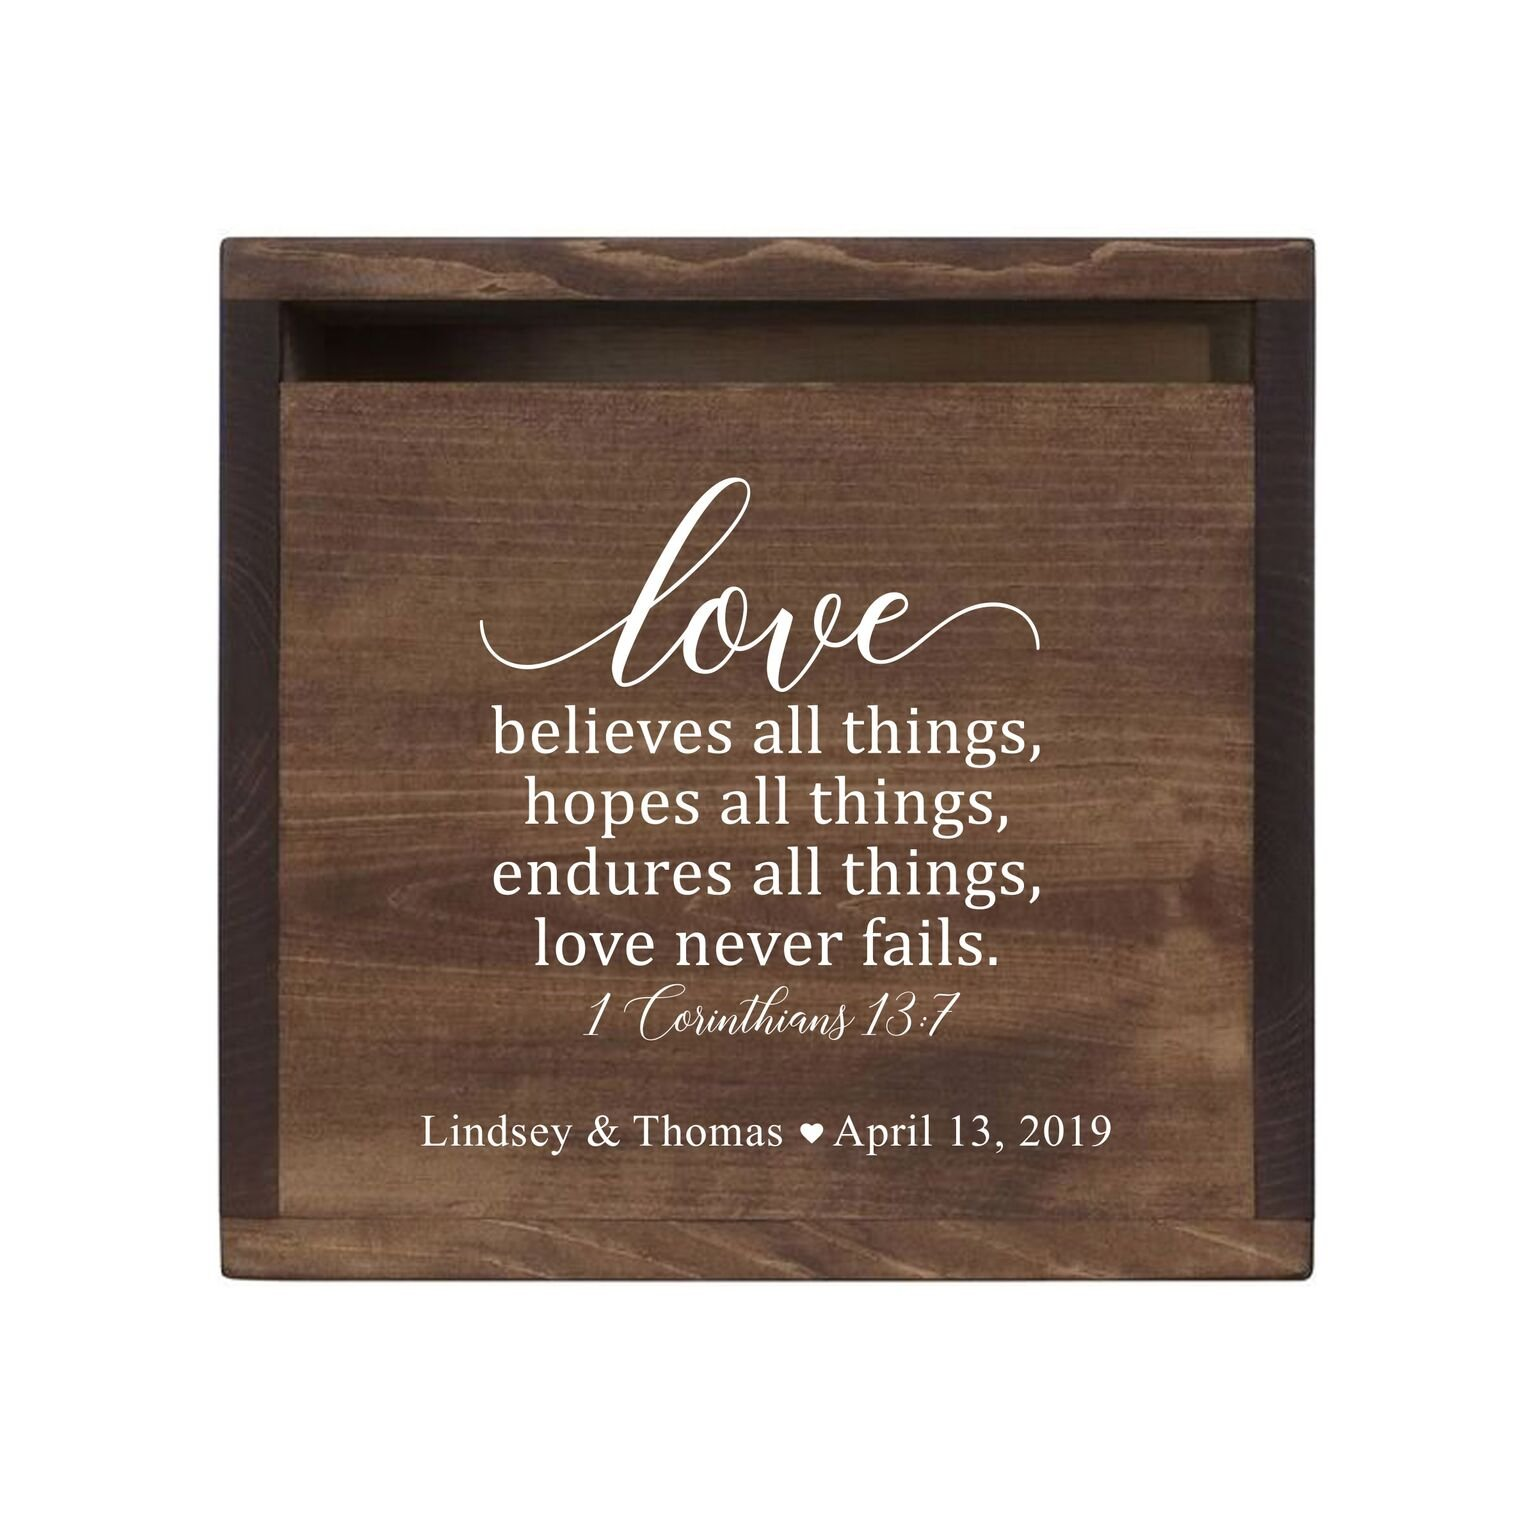 LifeSong Milestones Personalized Love Never Fails Rustic Wooden Wedding Card Box Custom Card Holder with Front Slot for Newlyweds Couples Reception 13.5'' L x 12'' W x 12.5'' T (Walnut)